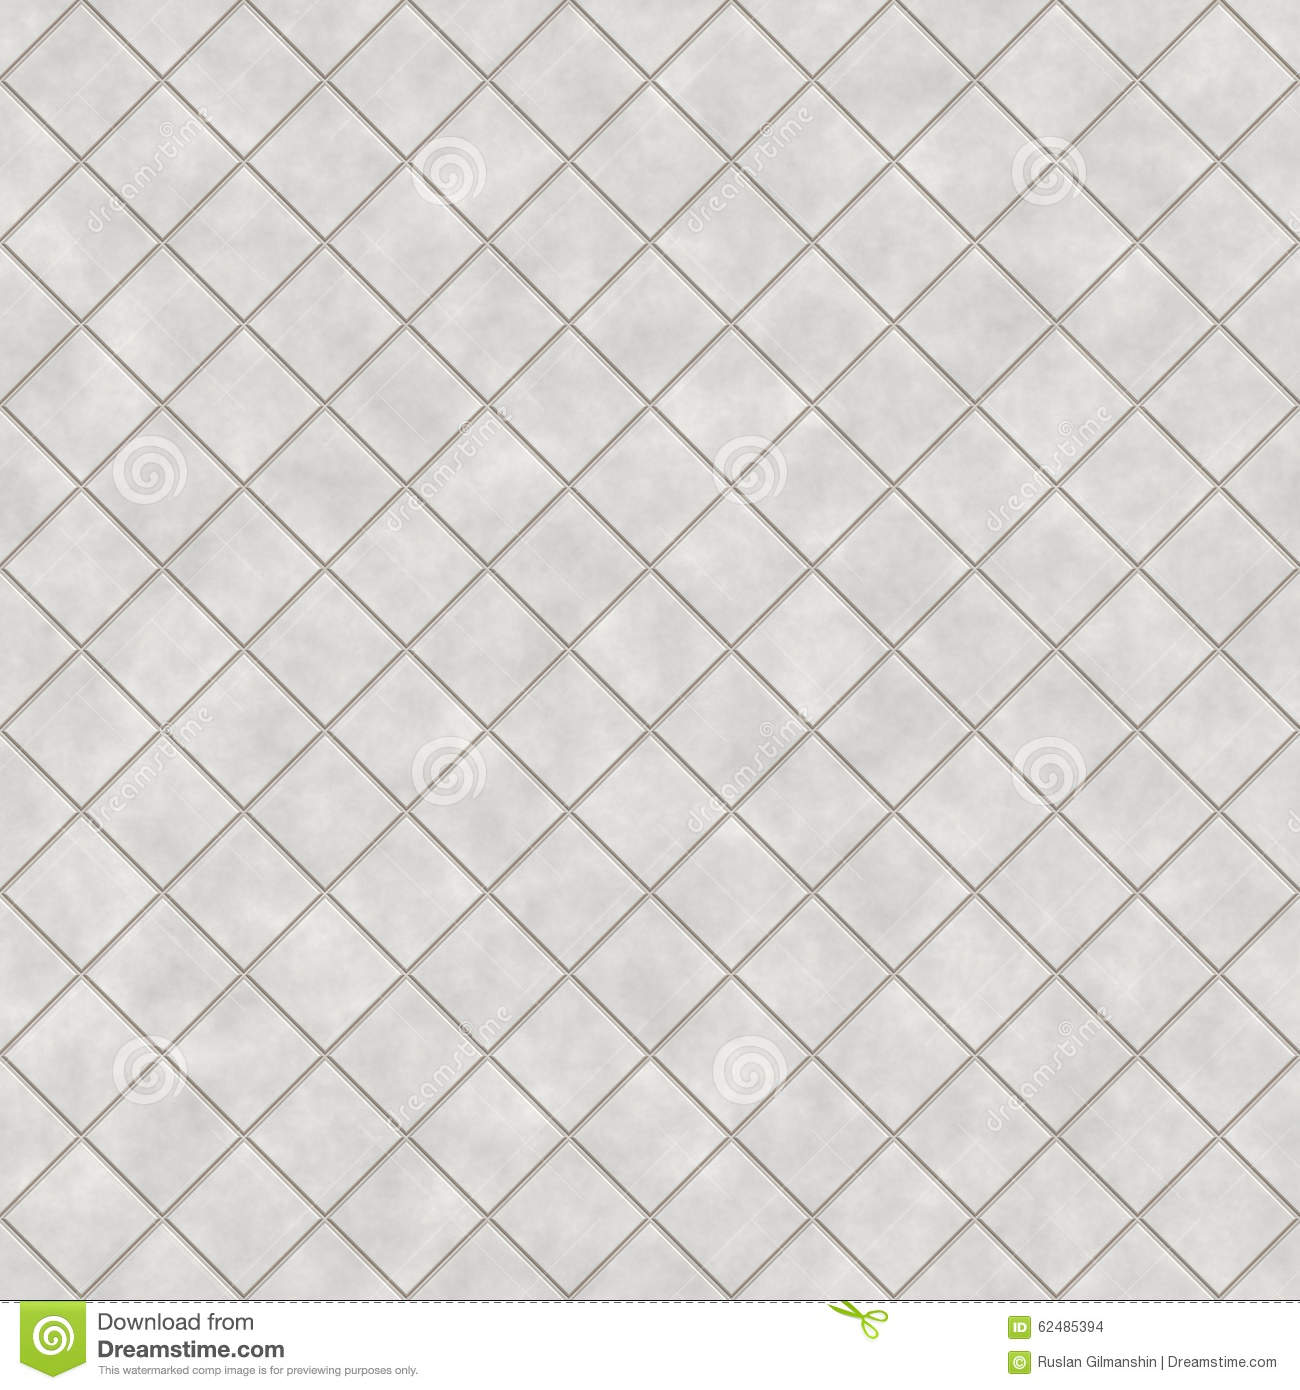 Pattern of seamless ceramic tile wall texture stock photo for Ceramic patterns designs